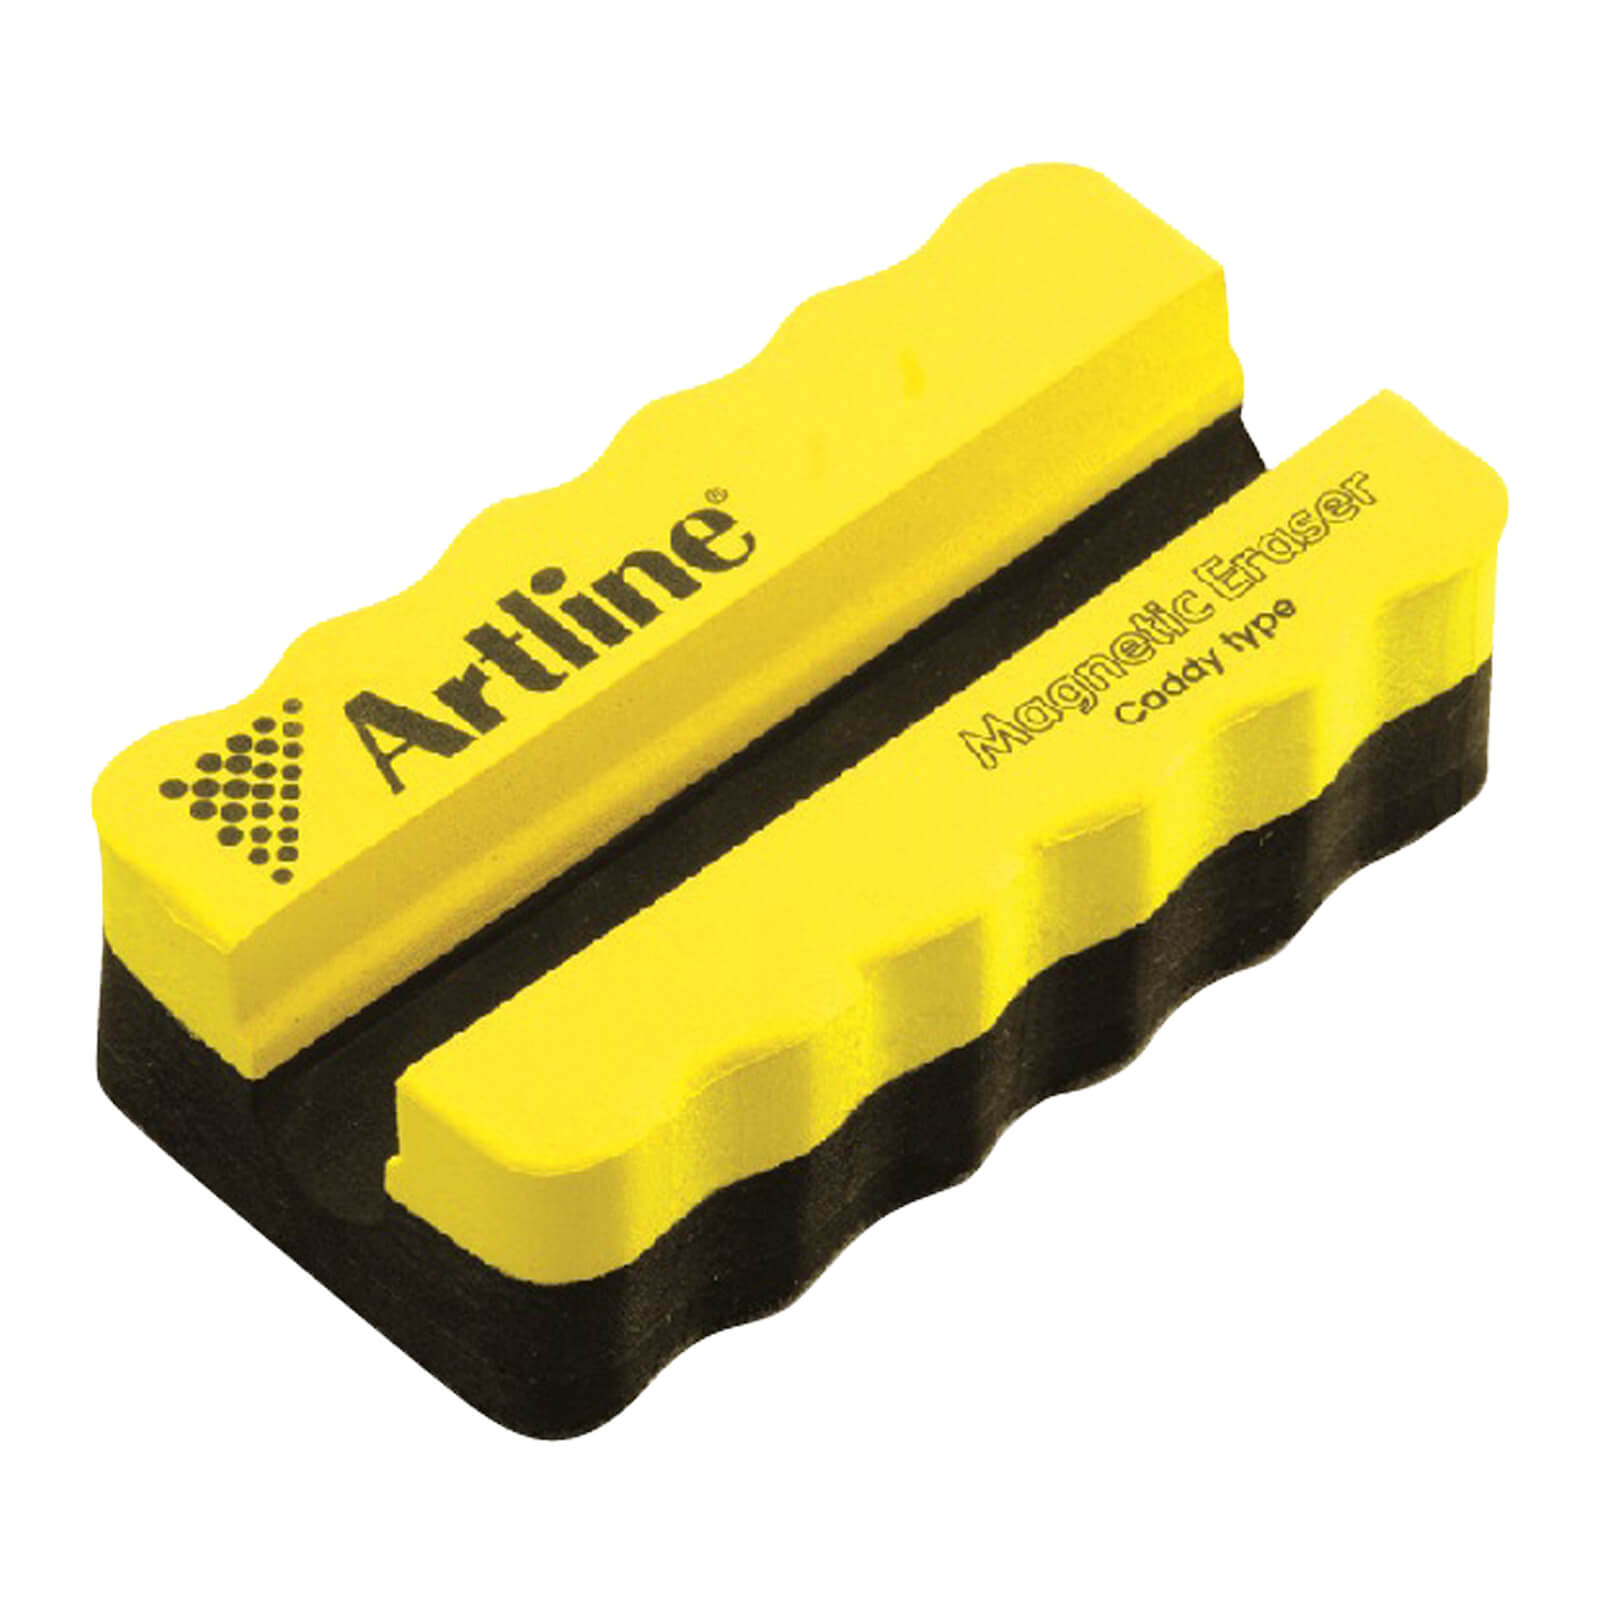 Artline Magnetic Whiteboard Eraser with Holder - Yellow (pc)